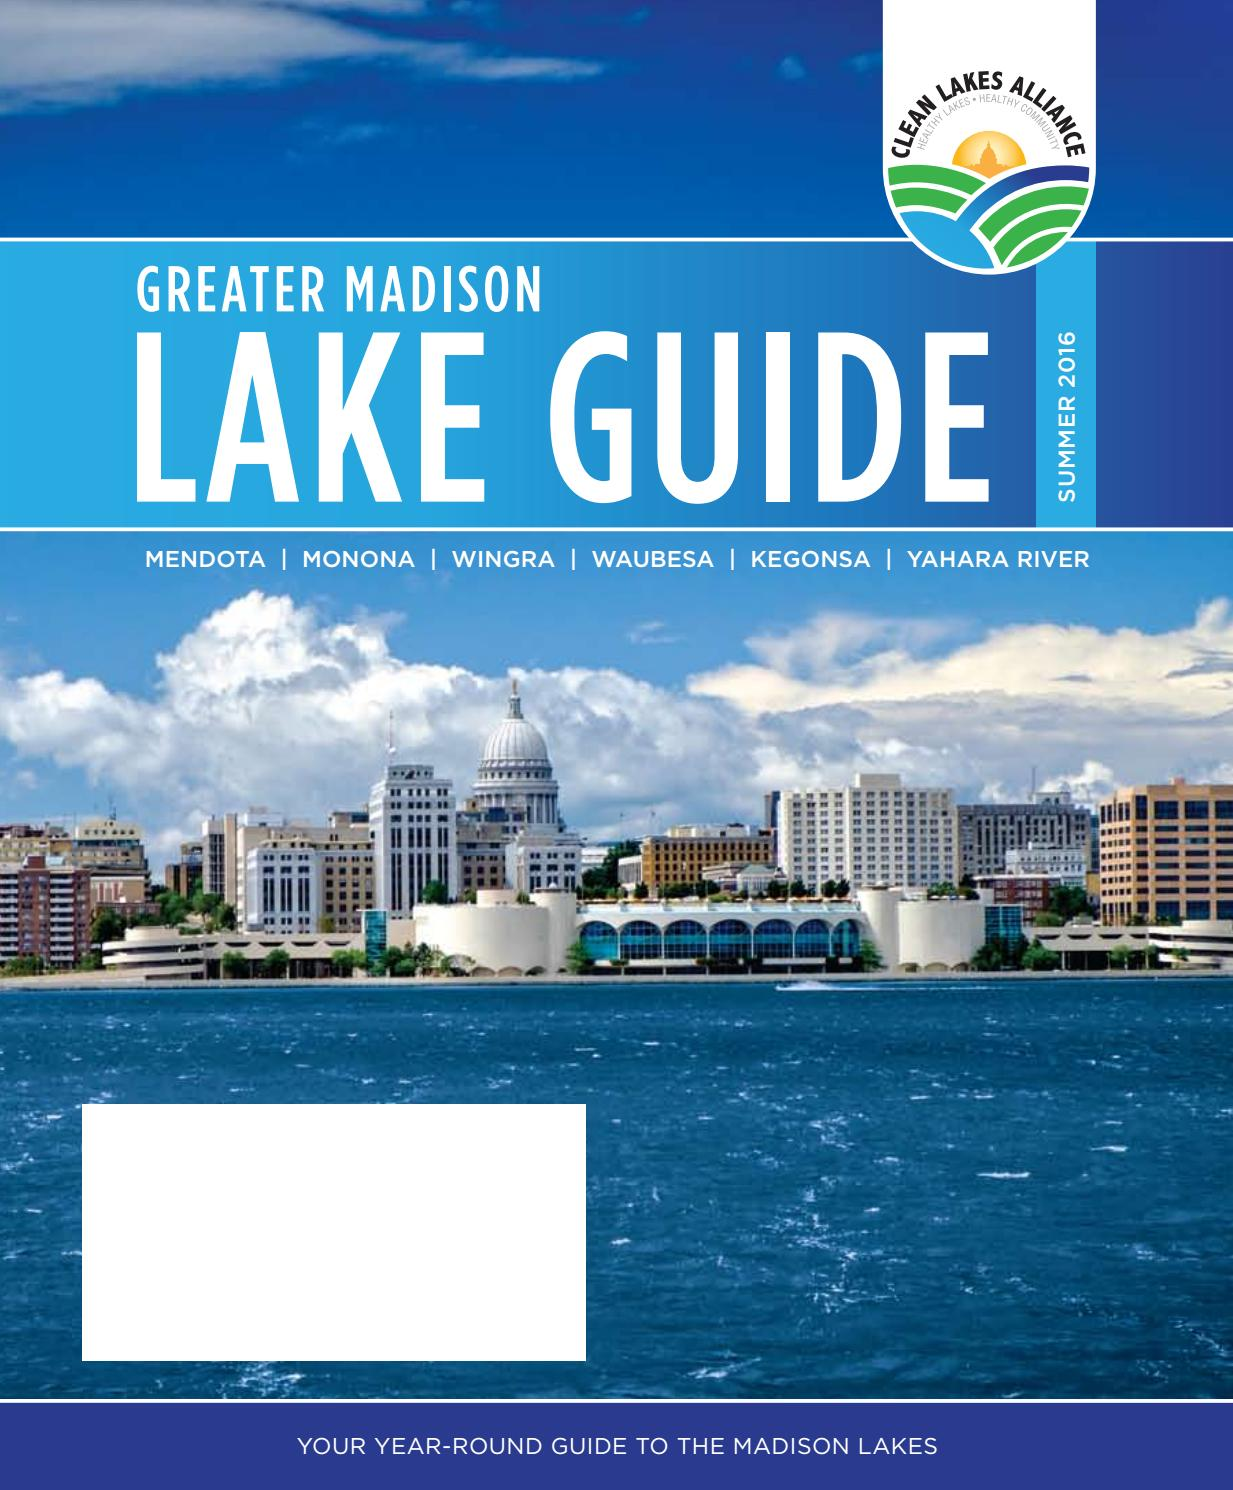 Lake Wingra On Cold December Day This >> Greater Madison Lake Guide By Clean Lakes Alliance Issuu